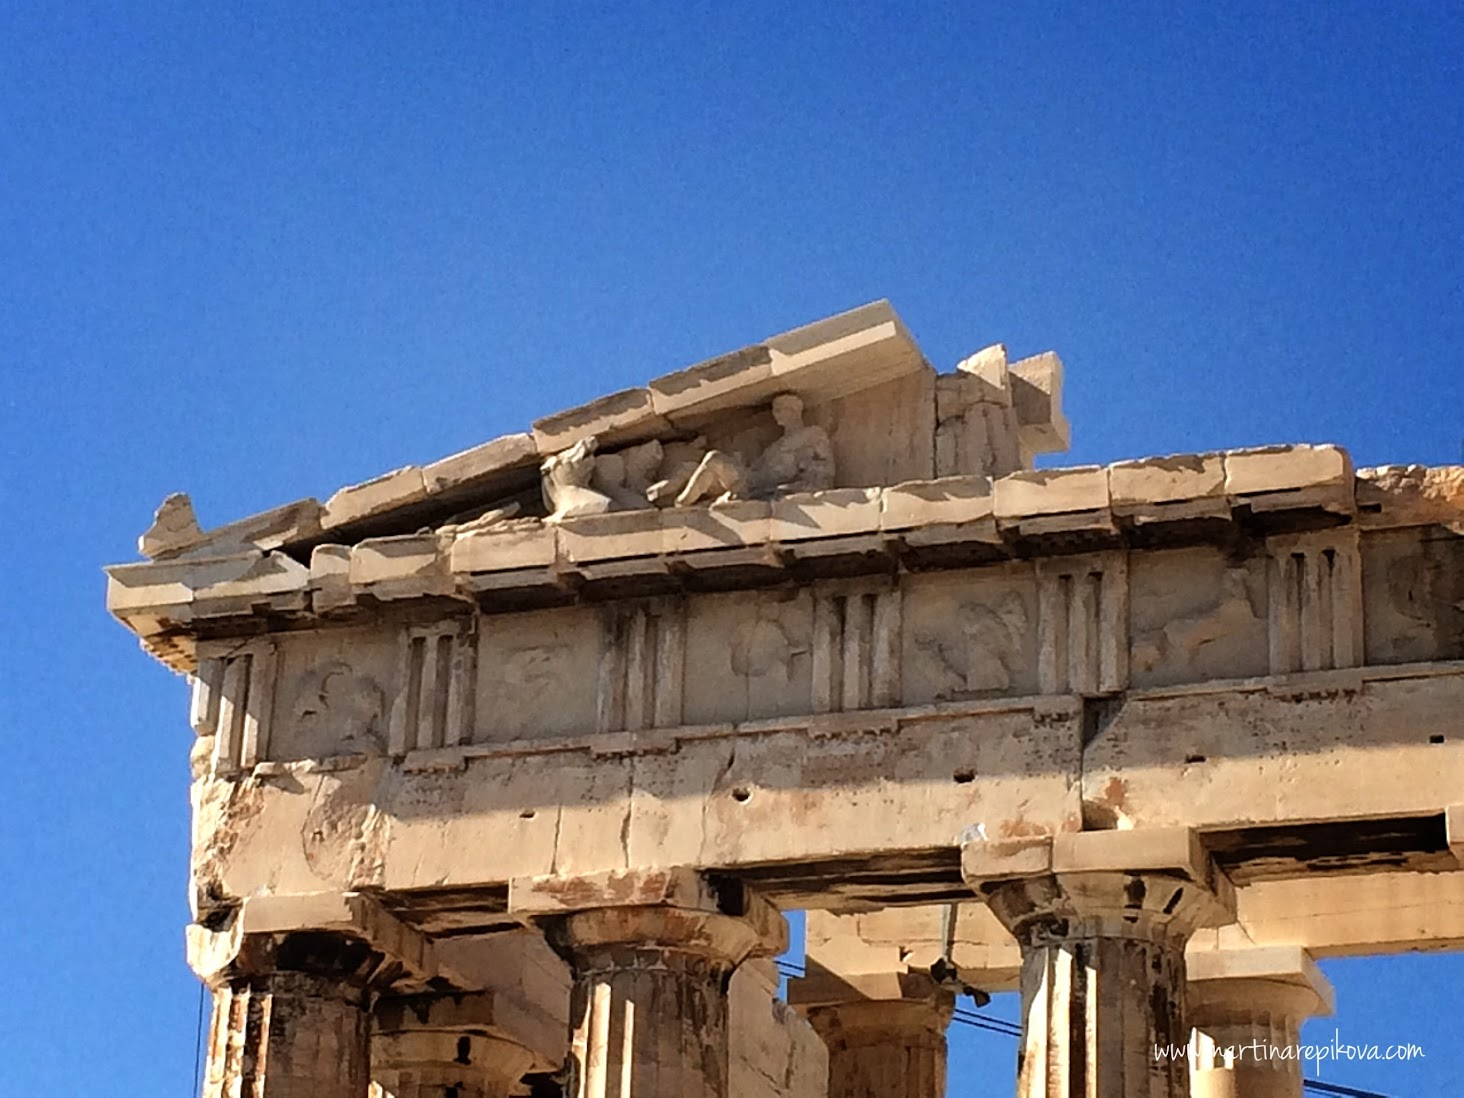 The details of Parthenon, Acropolis, Athens, Greece